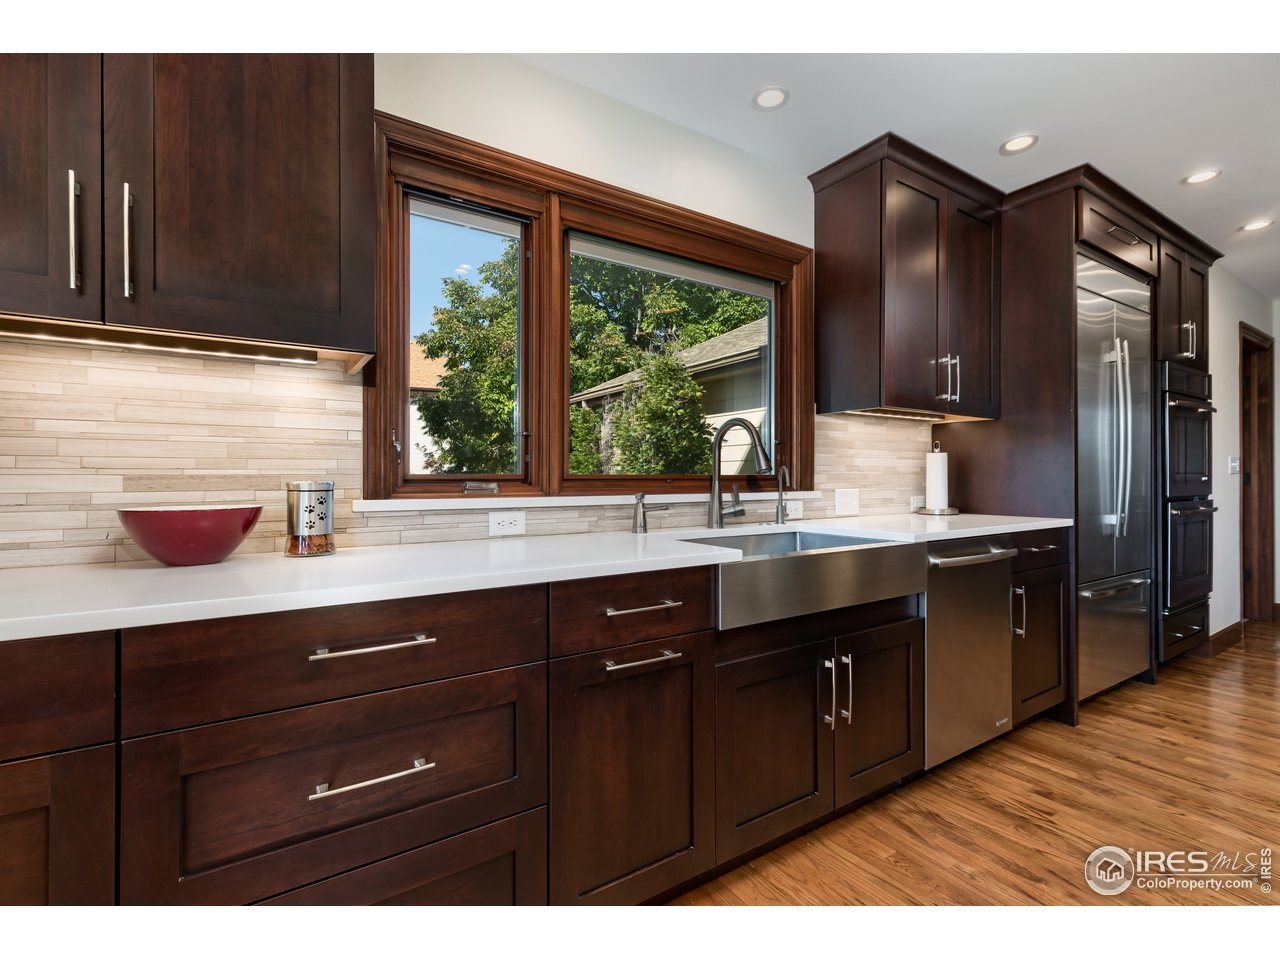 Butler Pantry and Wine Cooler